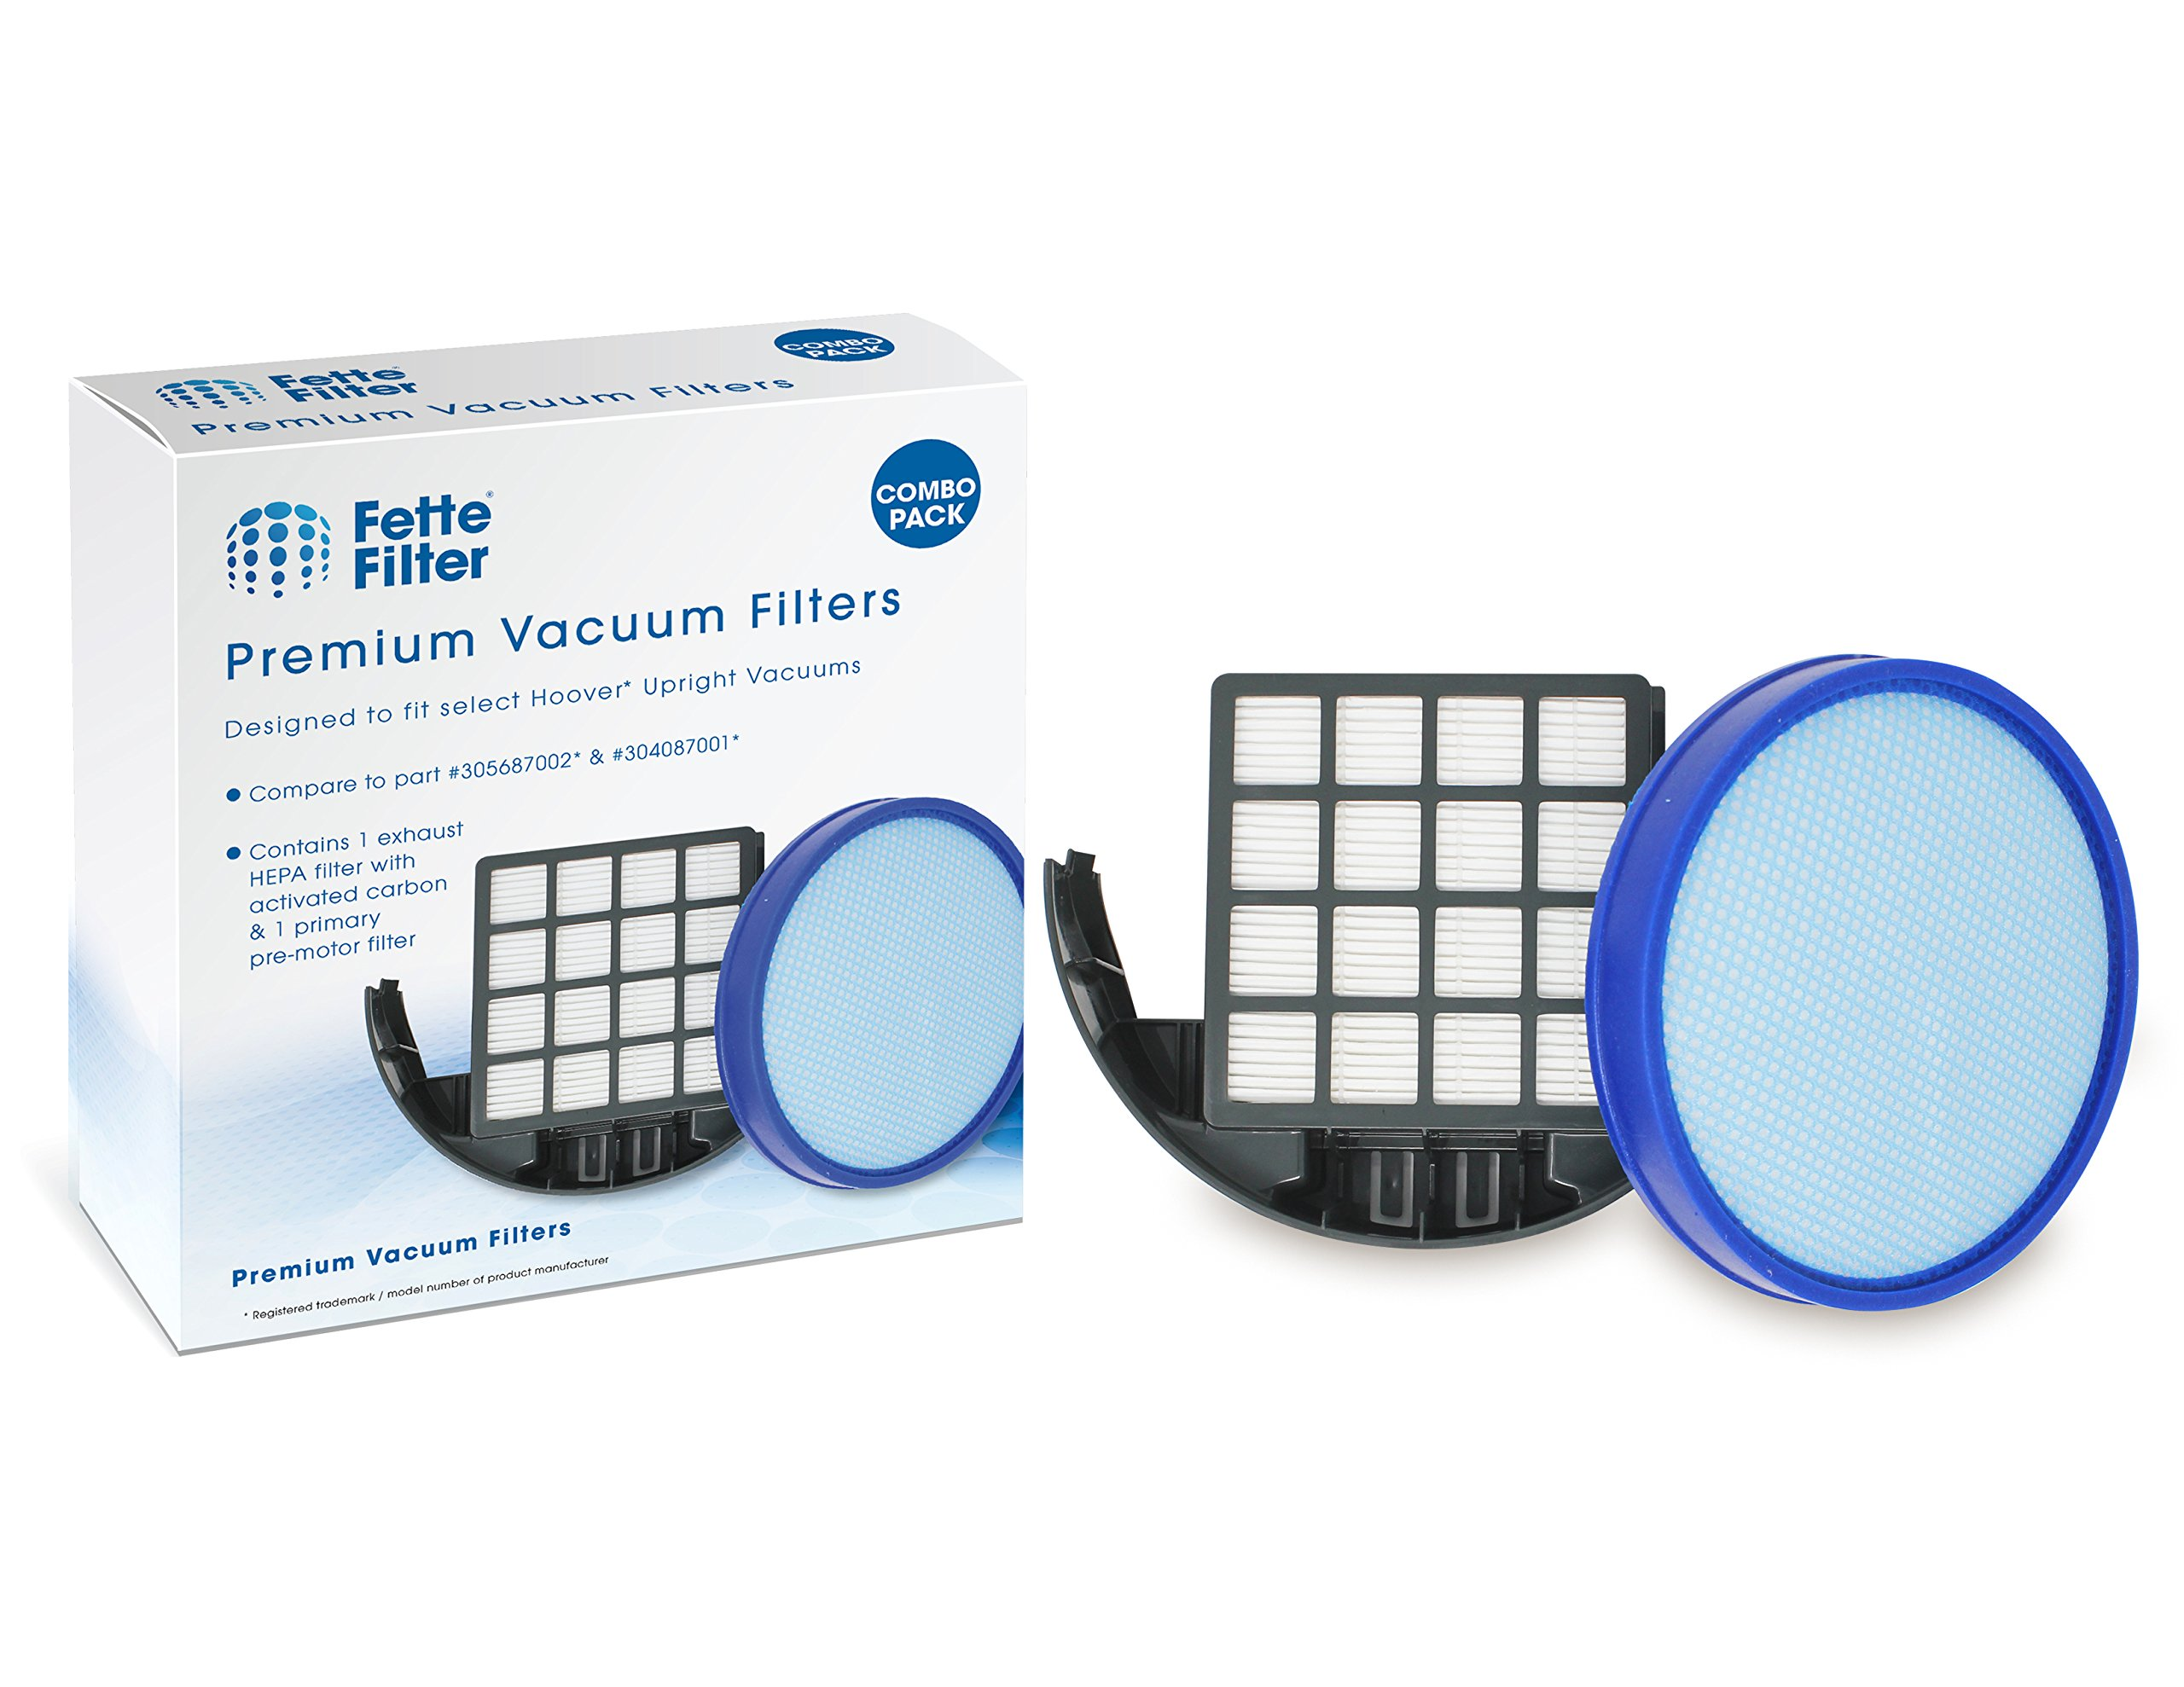 Fette Filter - Vacuum Filter Kit Compatible with Hoover 304087001 & 305687002 WindTunnel 3 High Performance Pet Upright